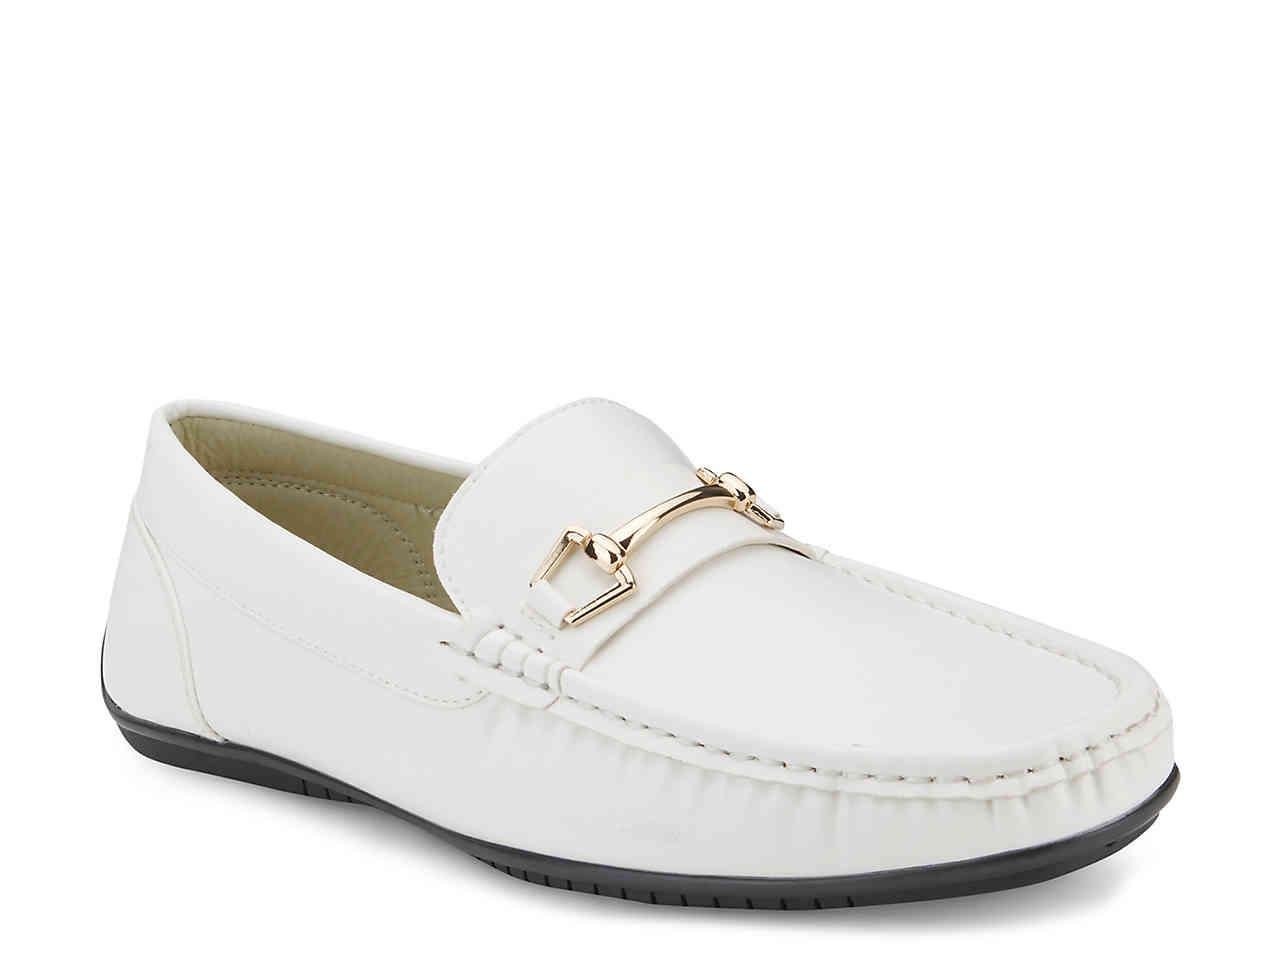 89f3fb4a6af Lyst - Xray Jeans Dumont Loafer in White for Men